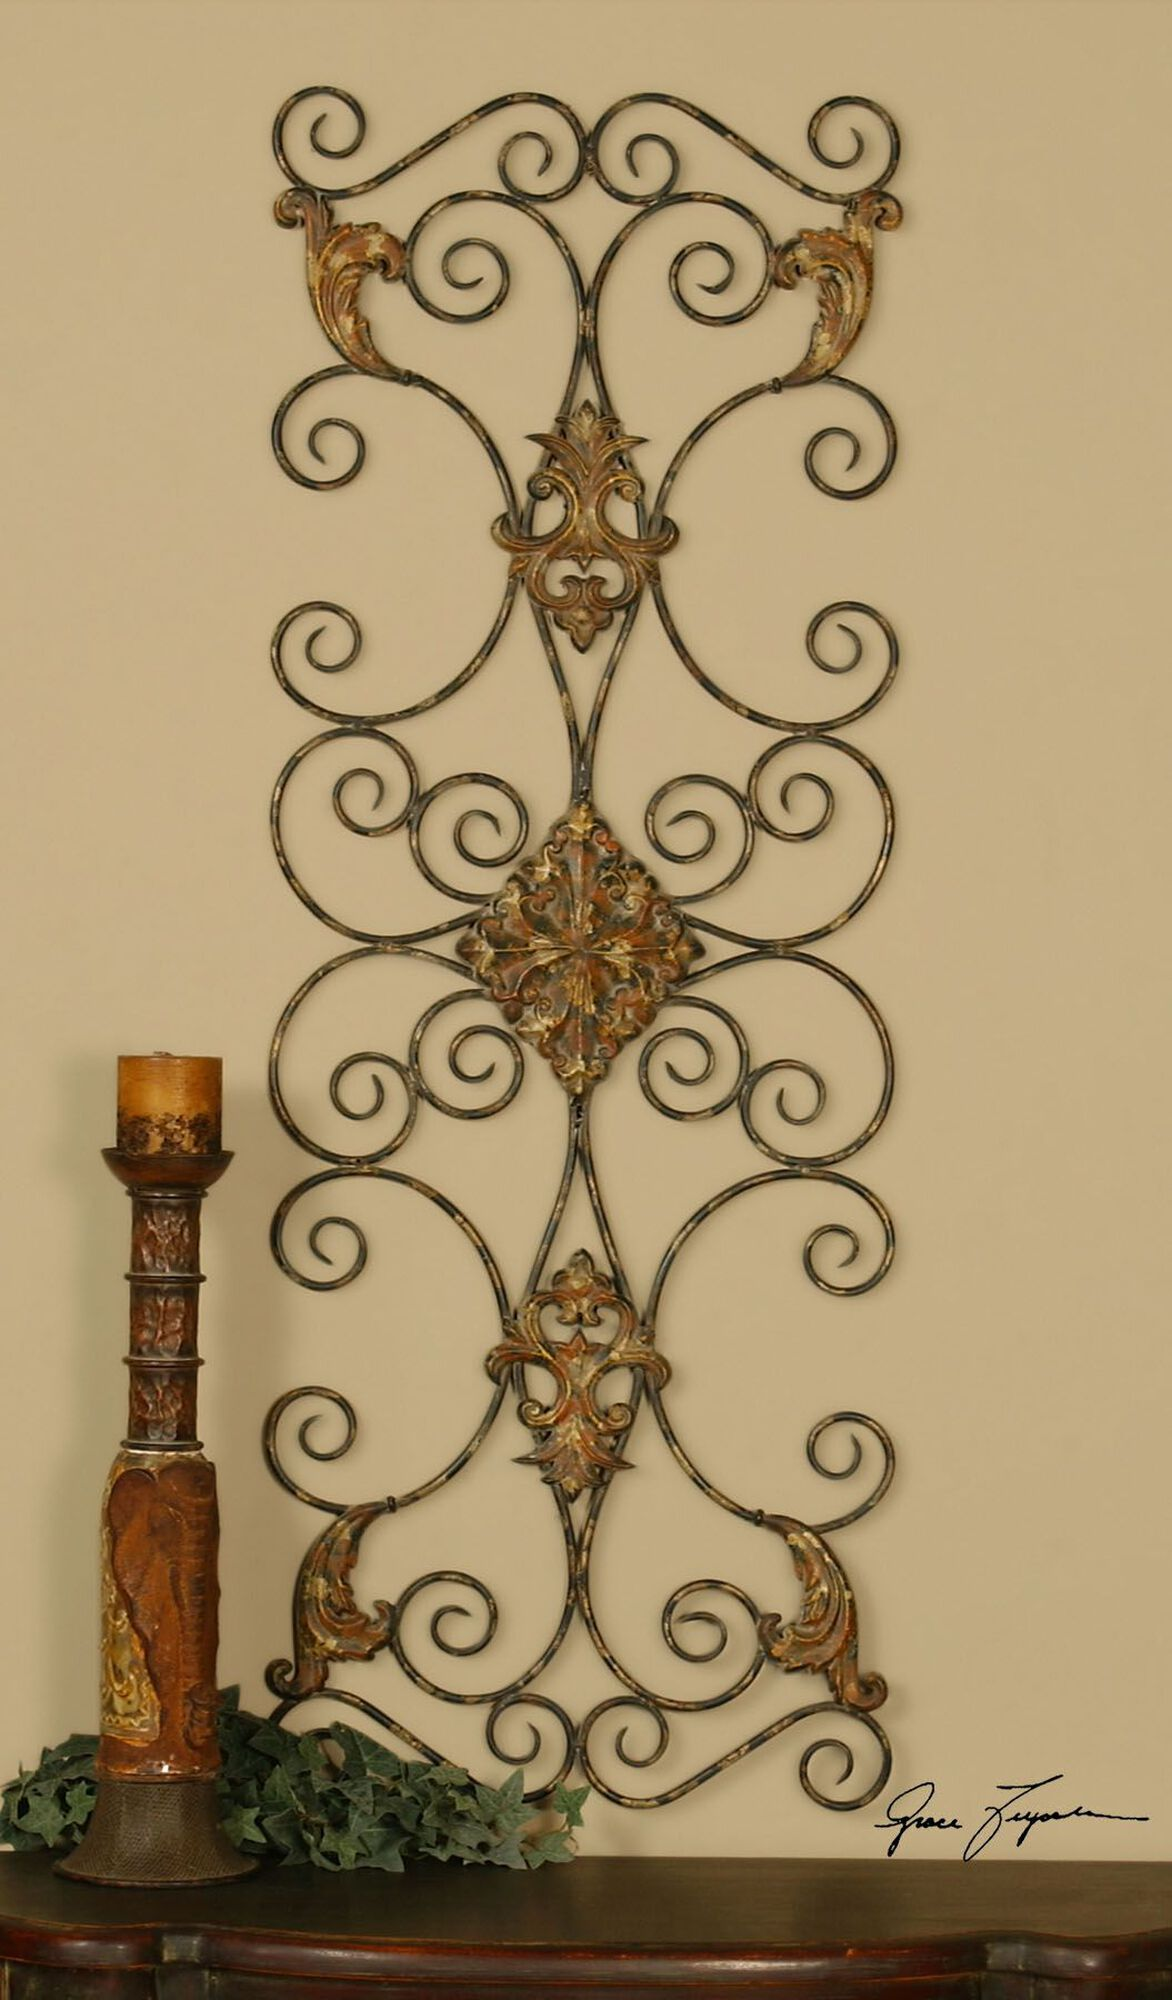 Hand-Forged Ornate Scroll Wall Art | Mathis Brothers Furniture